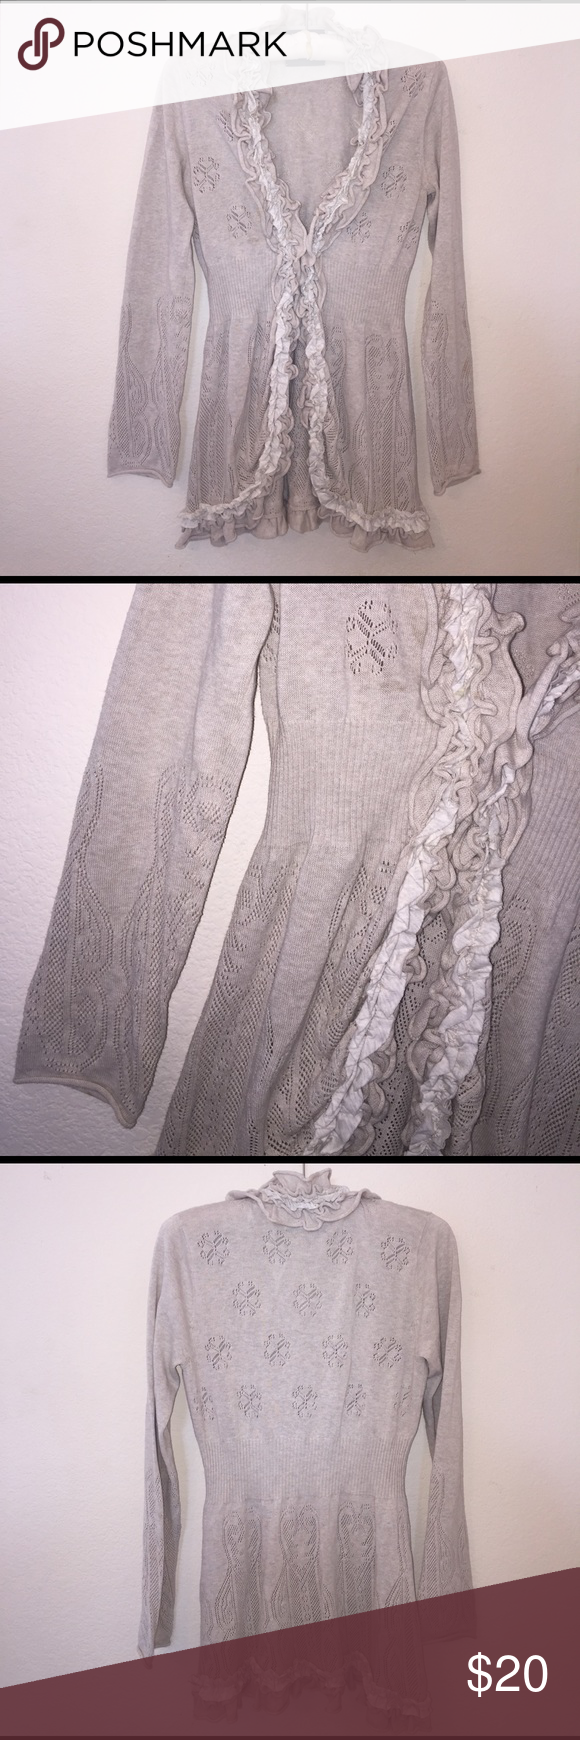 Anthropologie Cardigan Brand: Guinevere. Great condition cream cardigan with clasp at center. Size is a L. Feel free to ask any questions! Anthropologie Sweaters Cardigans